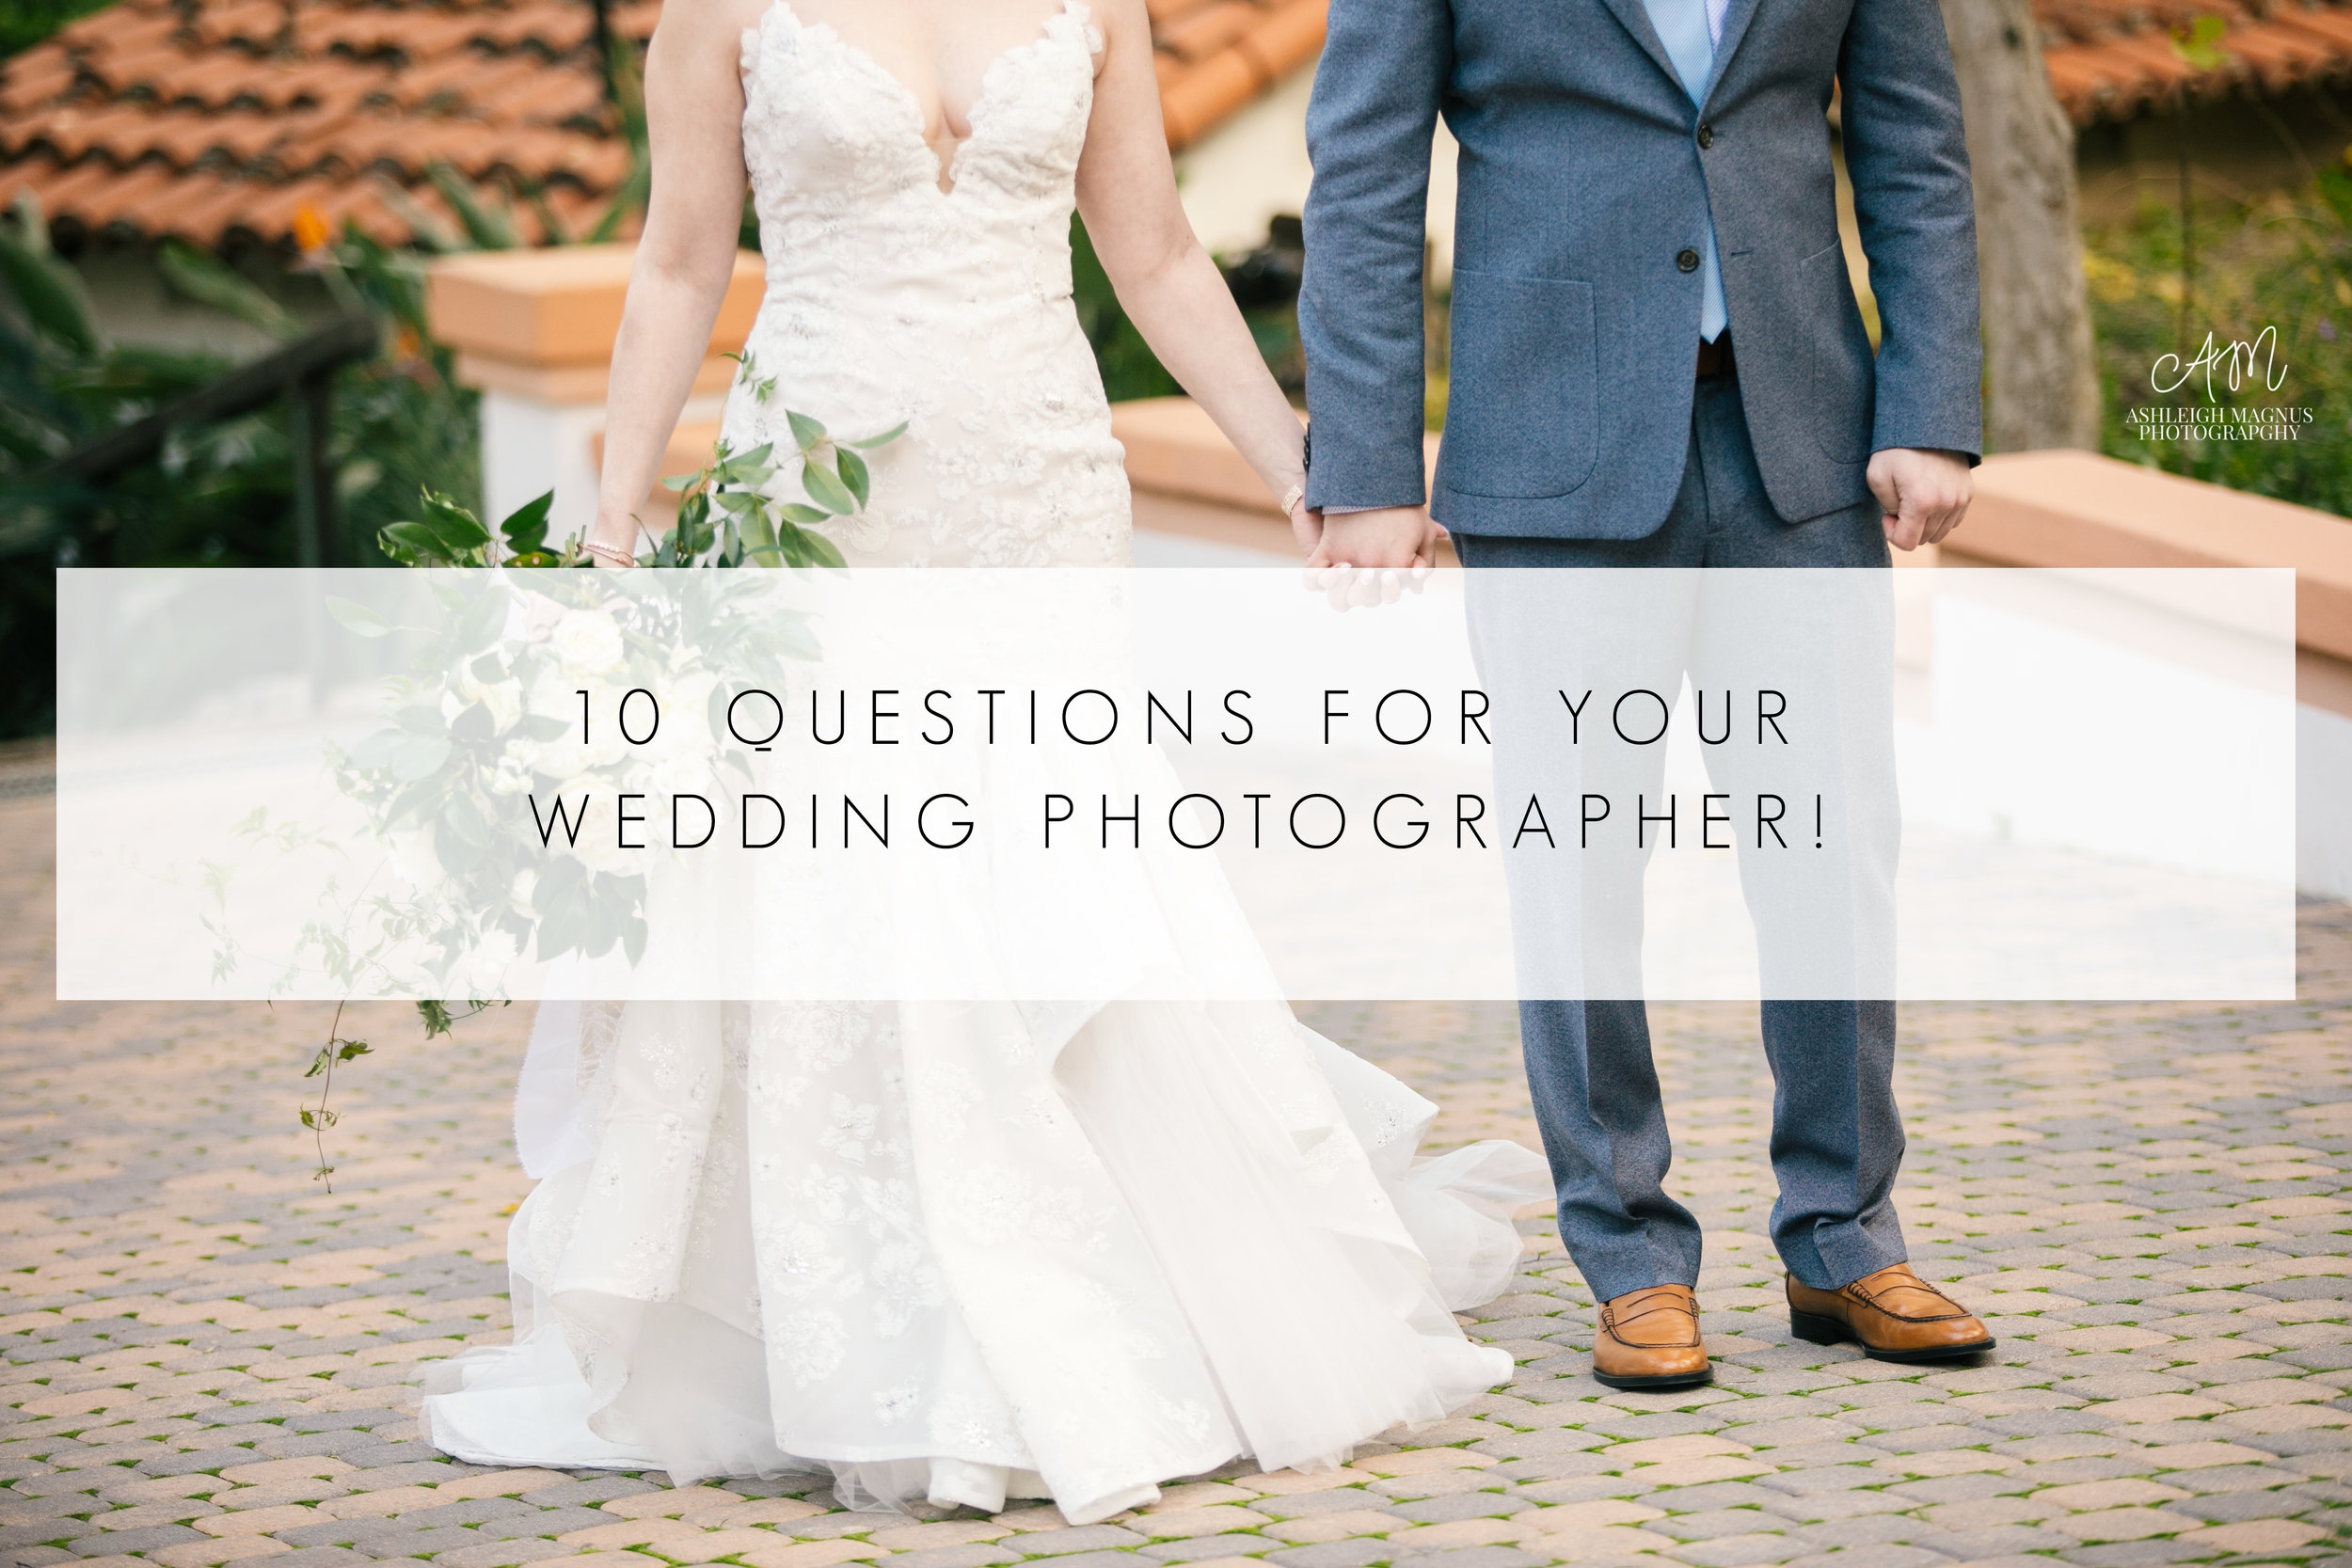 10 QUESTIONS FOR YOUR WEDDING PHOTOGRAPHER